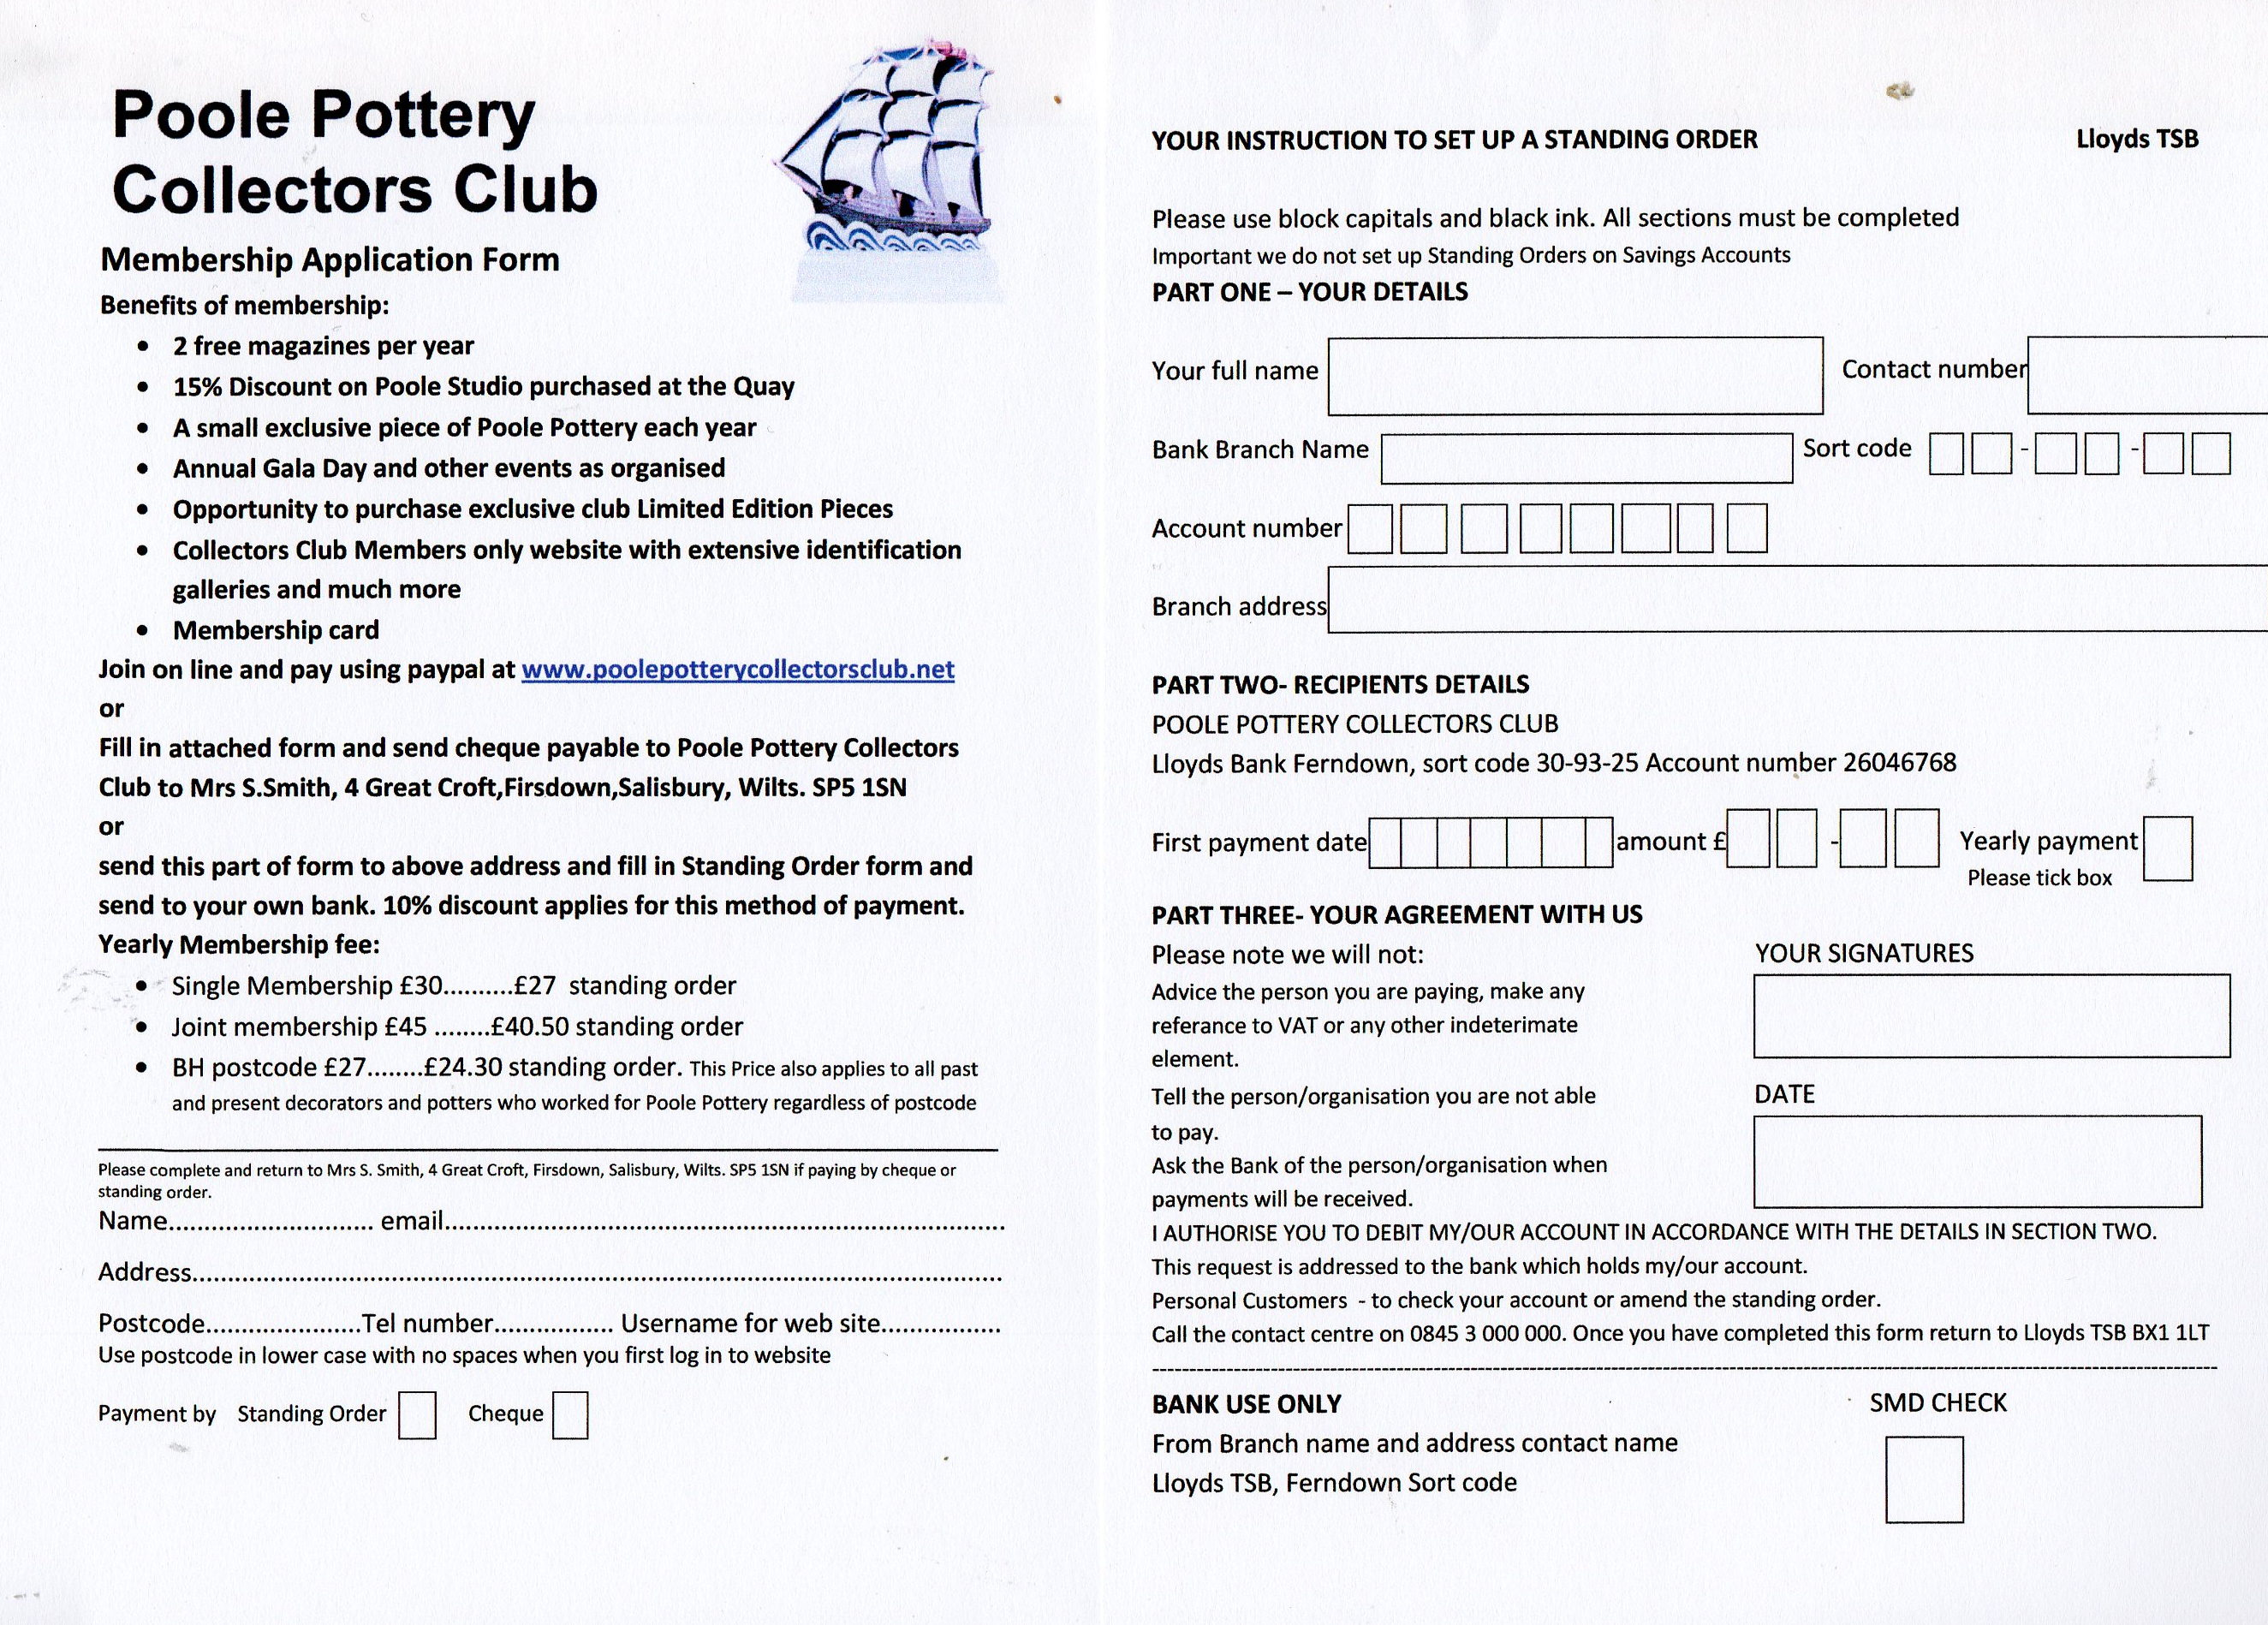 Membership form 13g download a printable standing order form here pronofoot35fo Choice Image